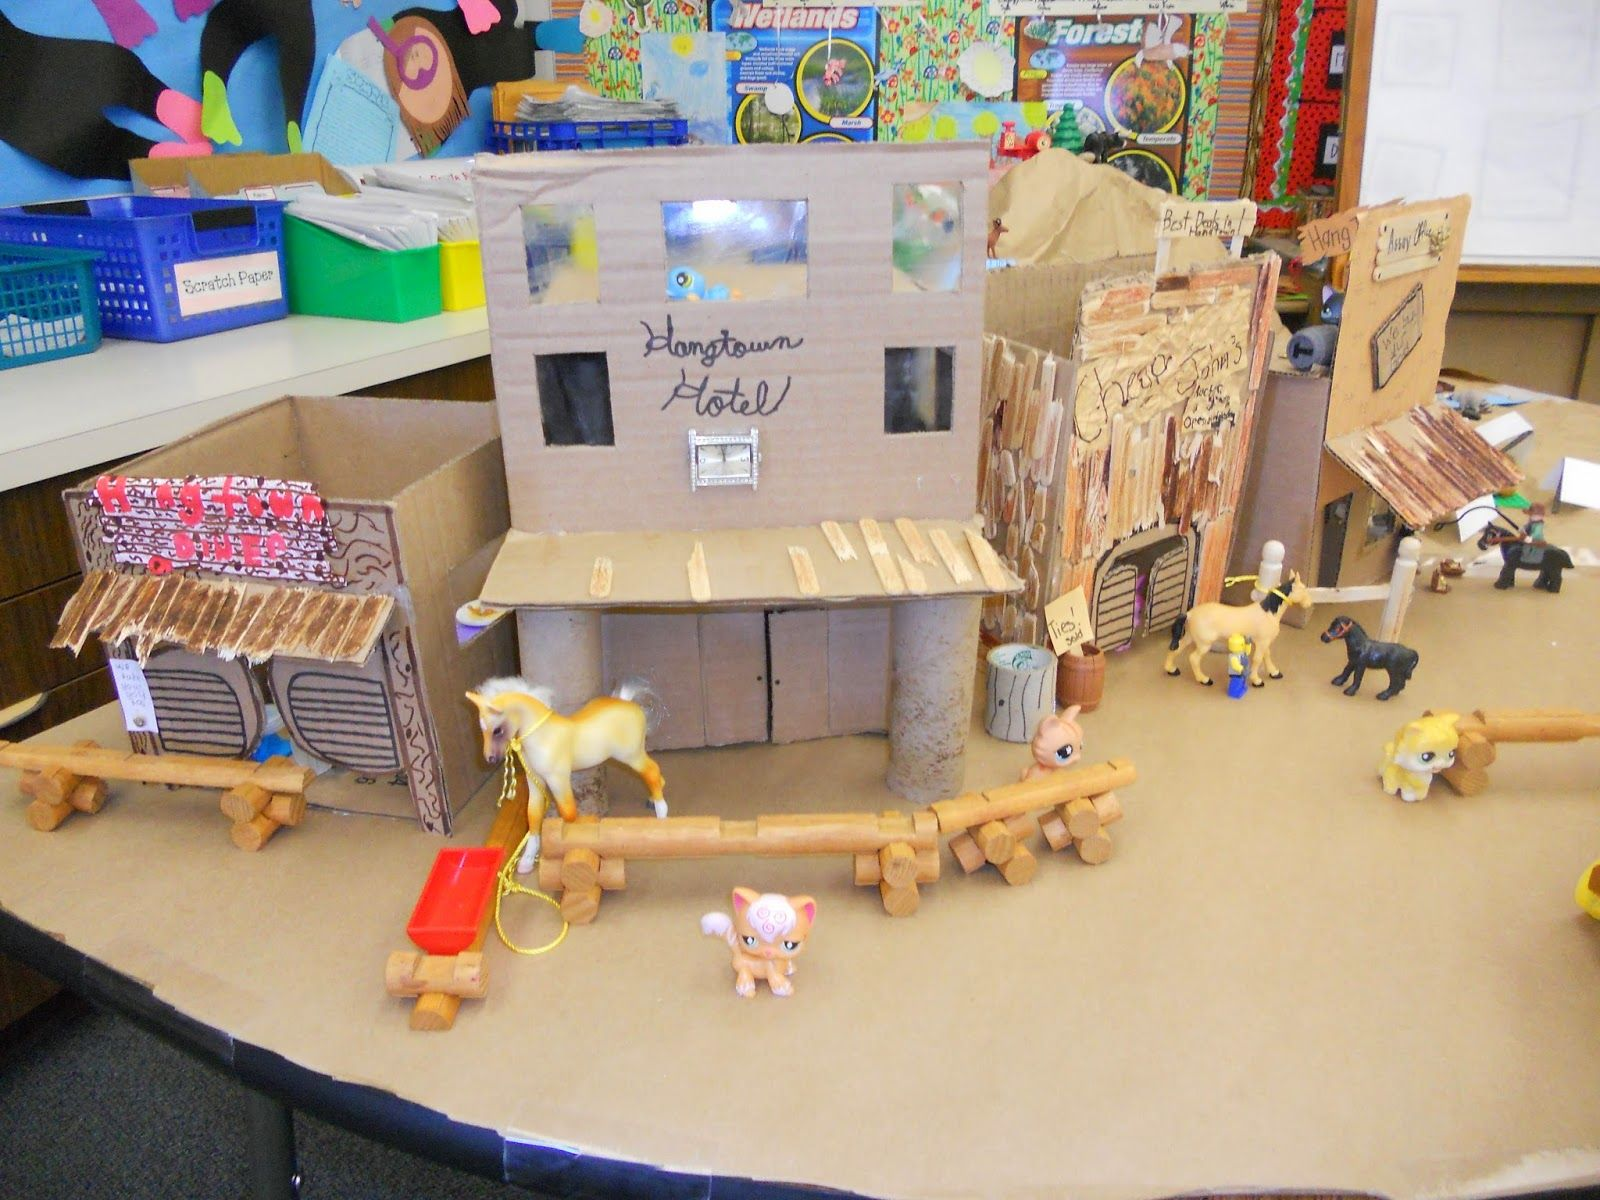 worksheet By The Great Horn Spoon Worksheets model of hangtown from btghs teaching social studies pinterest by the great horn spoon california gold rush town diorama